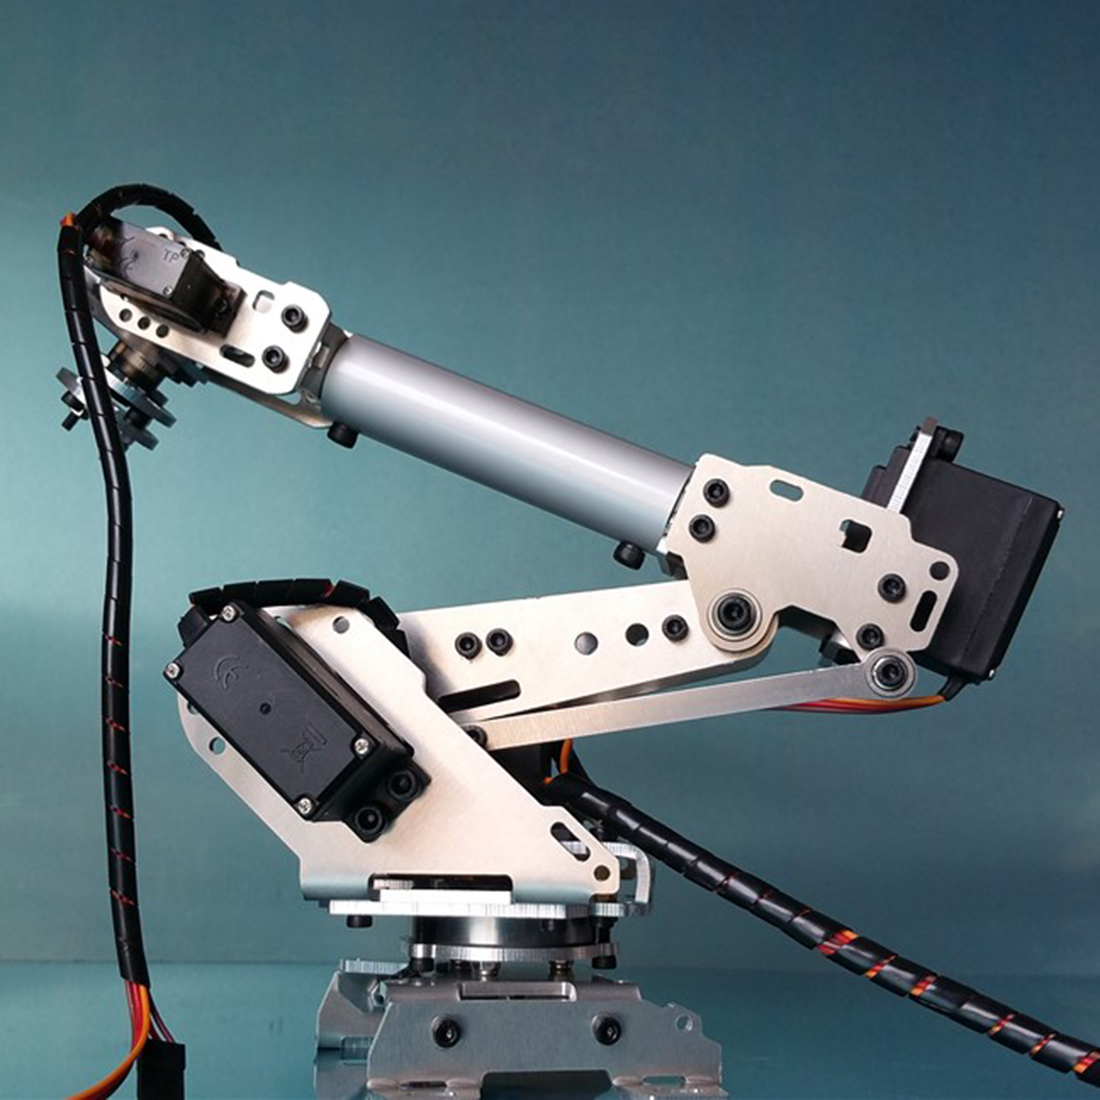 DIY 6DOF Mechanical Arm Robot Kit PS2 Remote Control Robot For Arduino For Children Kids Developmental Early Educational Toys